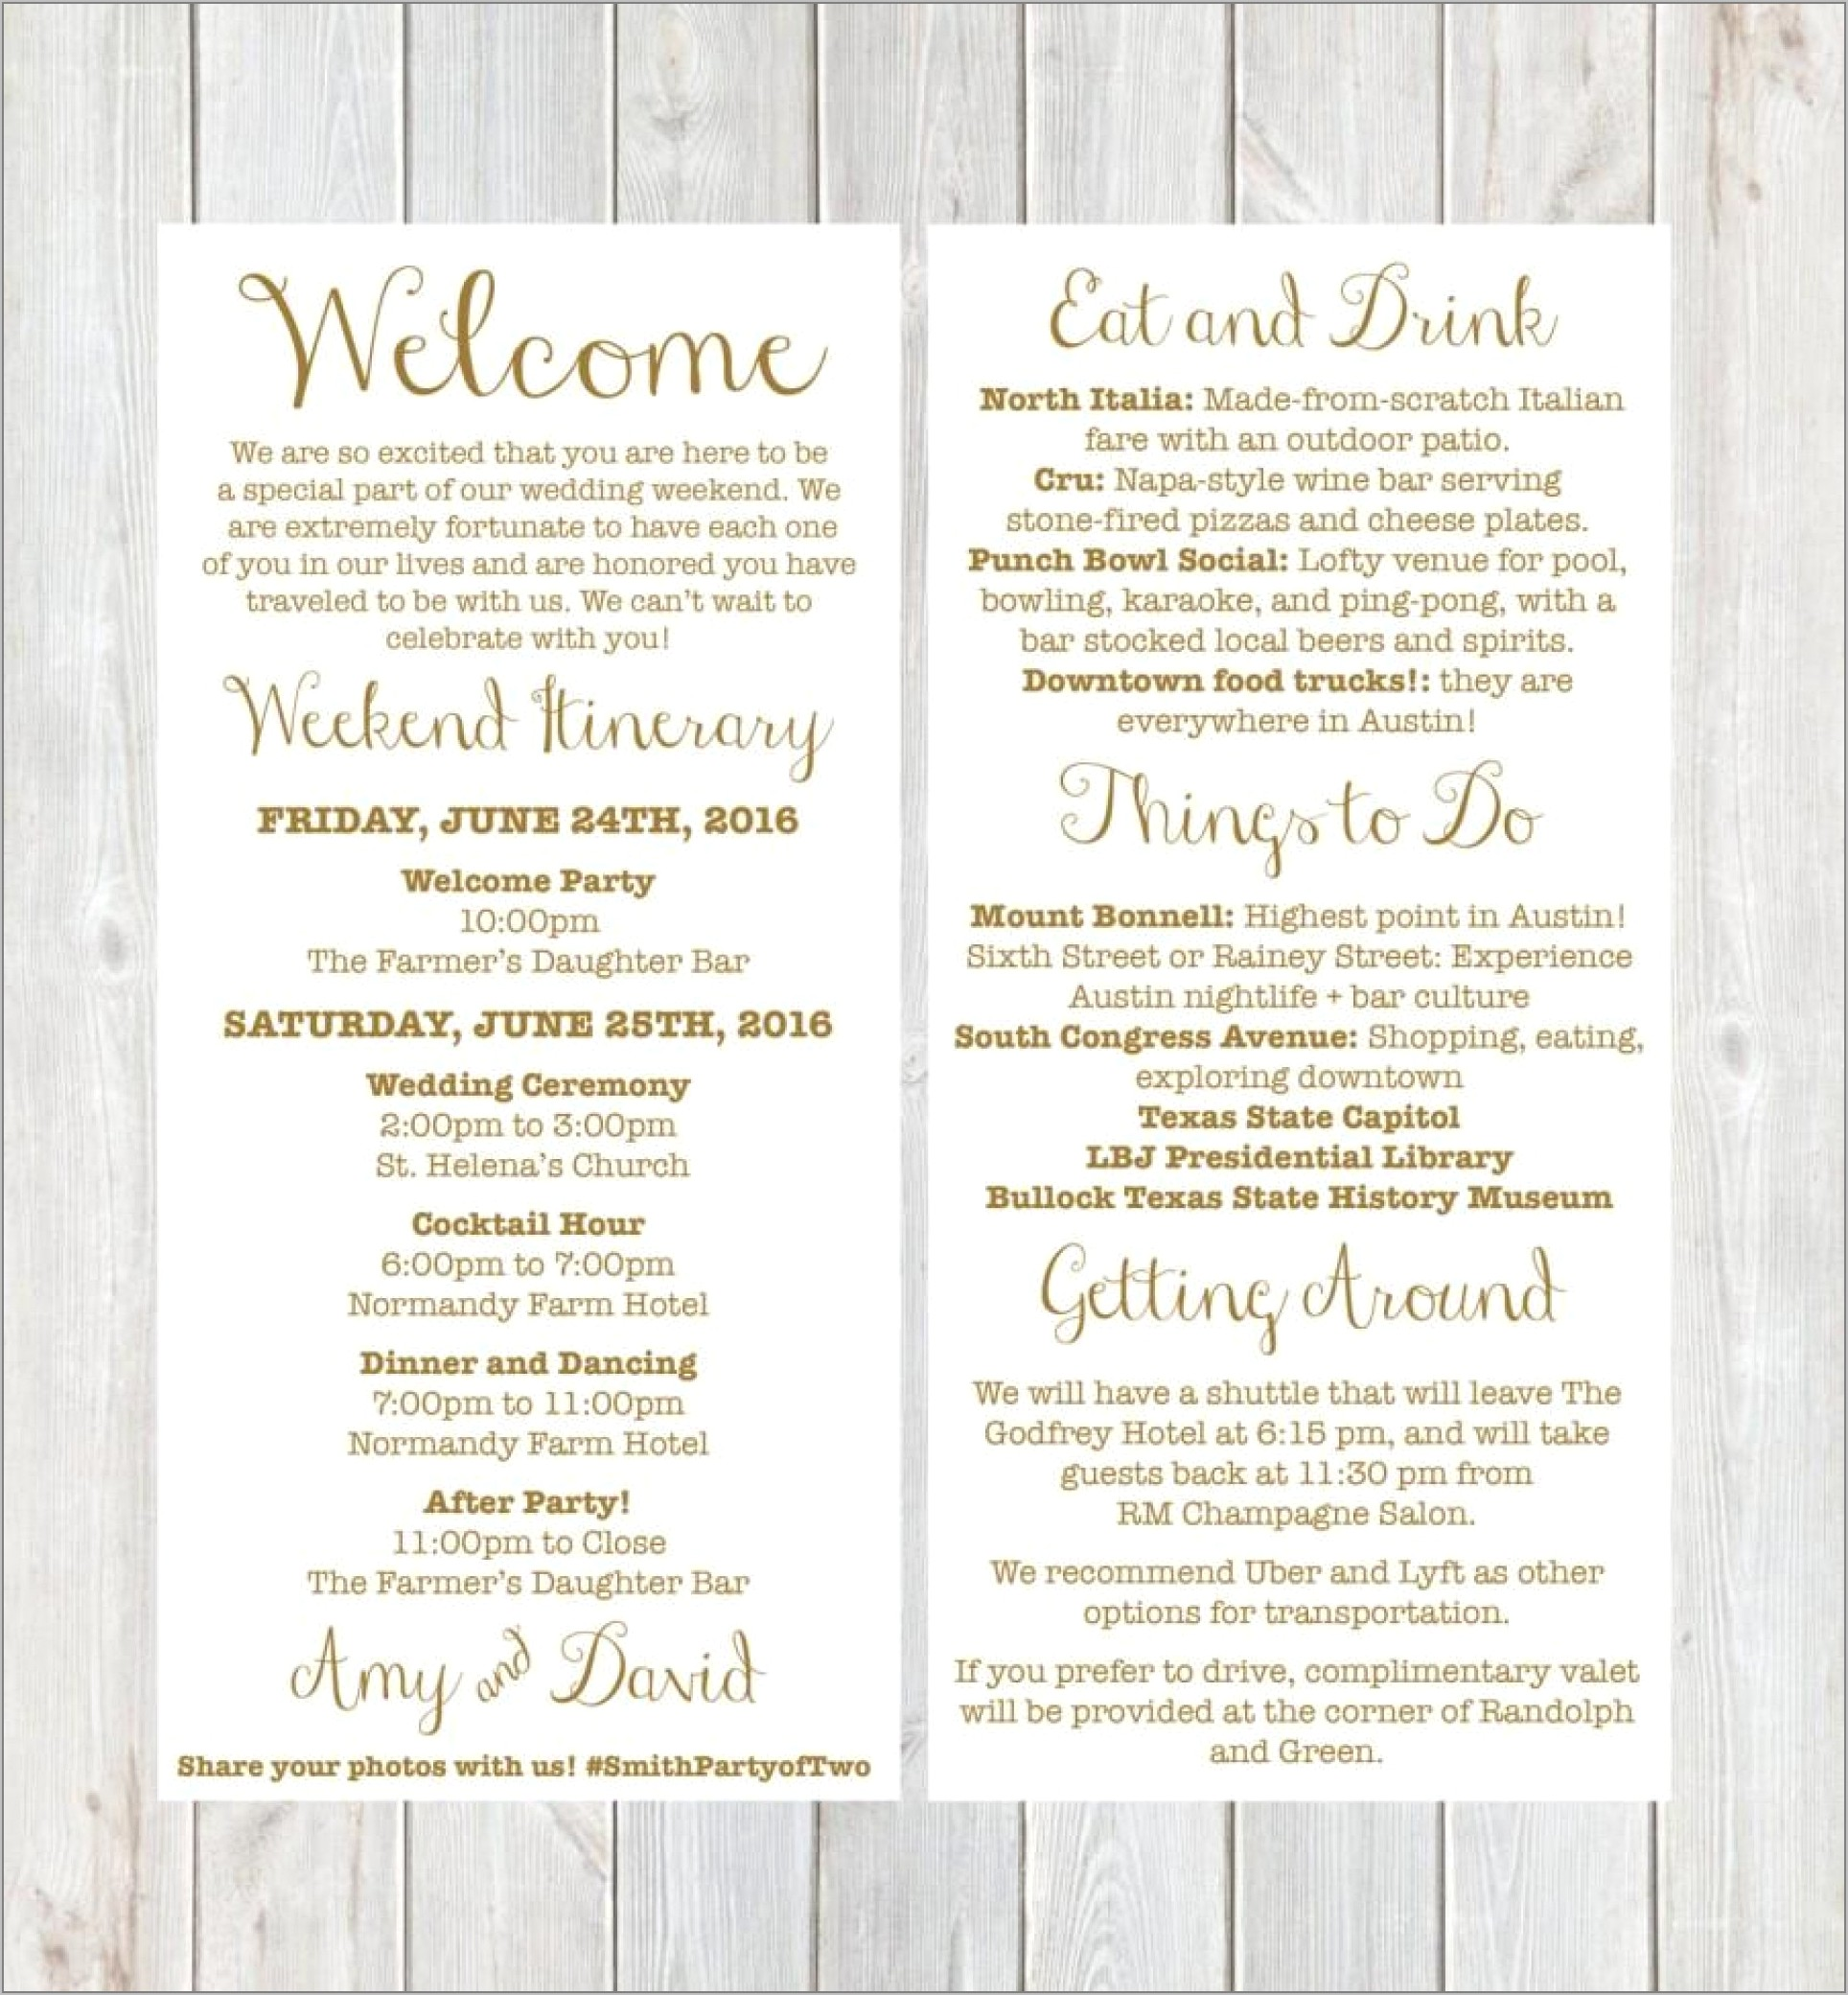 Destination Wedding Welcome Letter And Itinerary Template